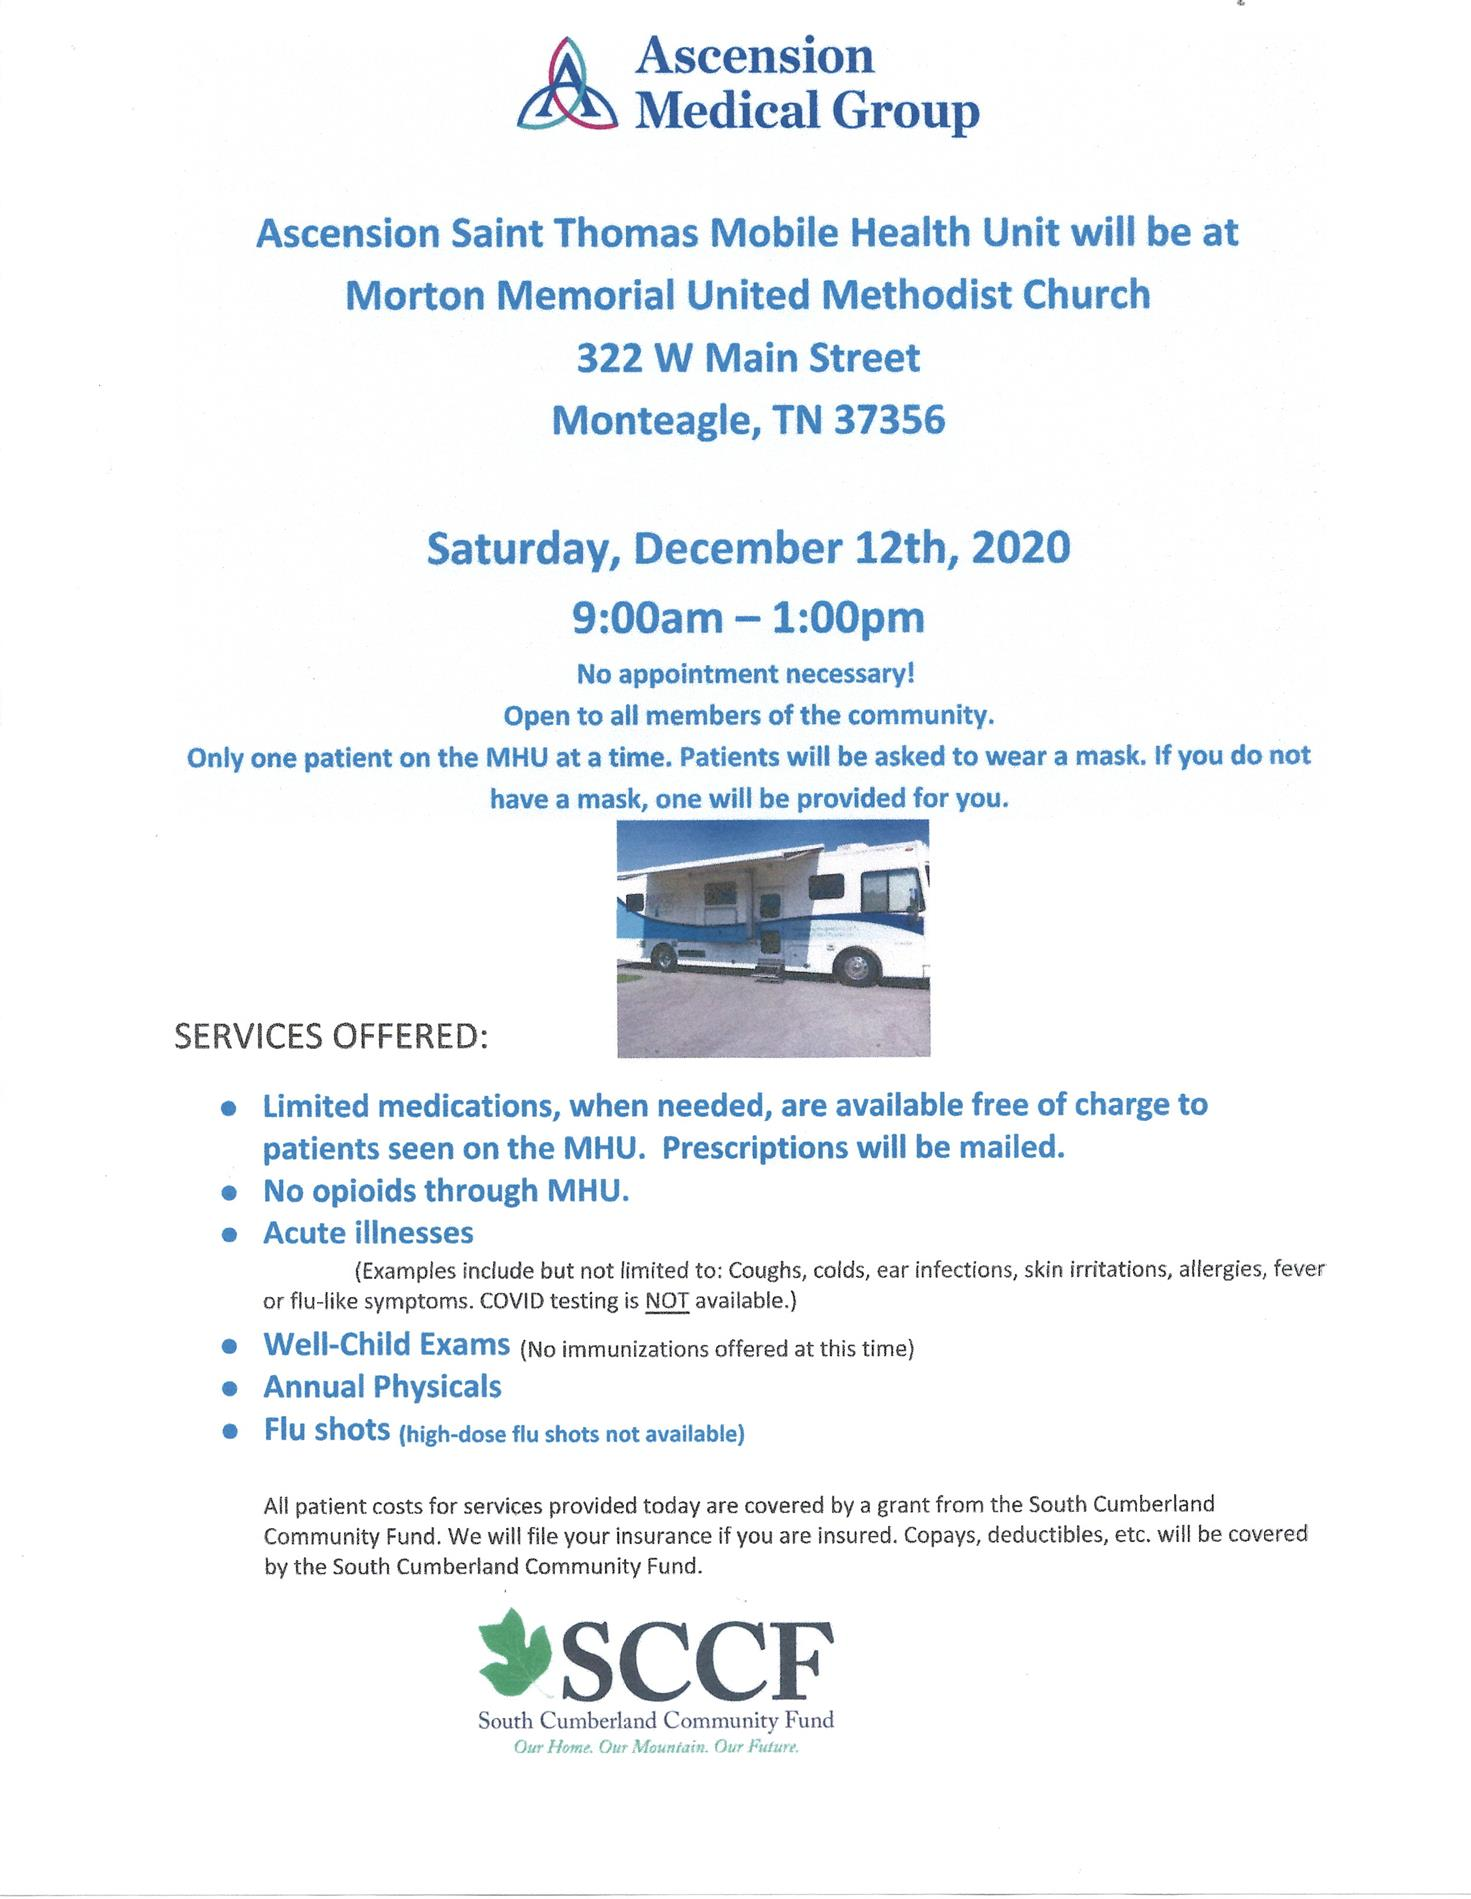 Mobile health unit flyer